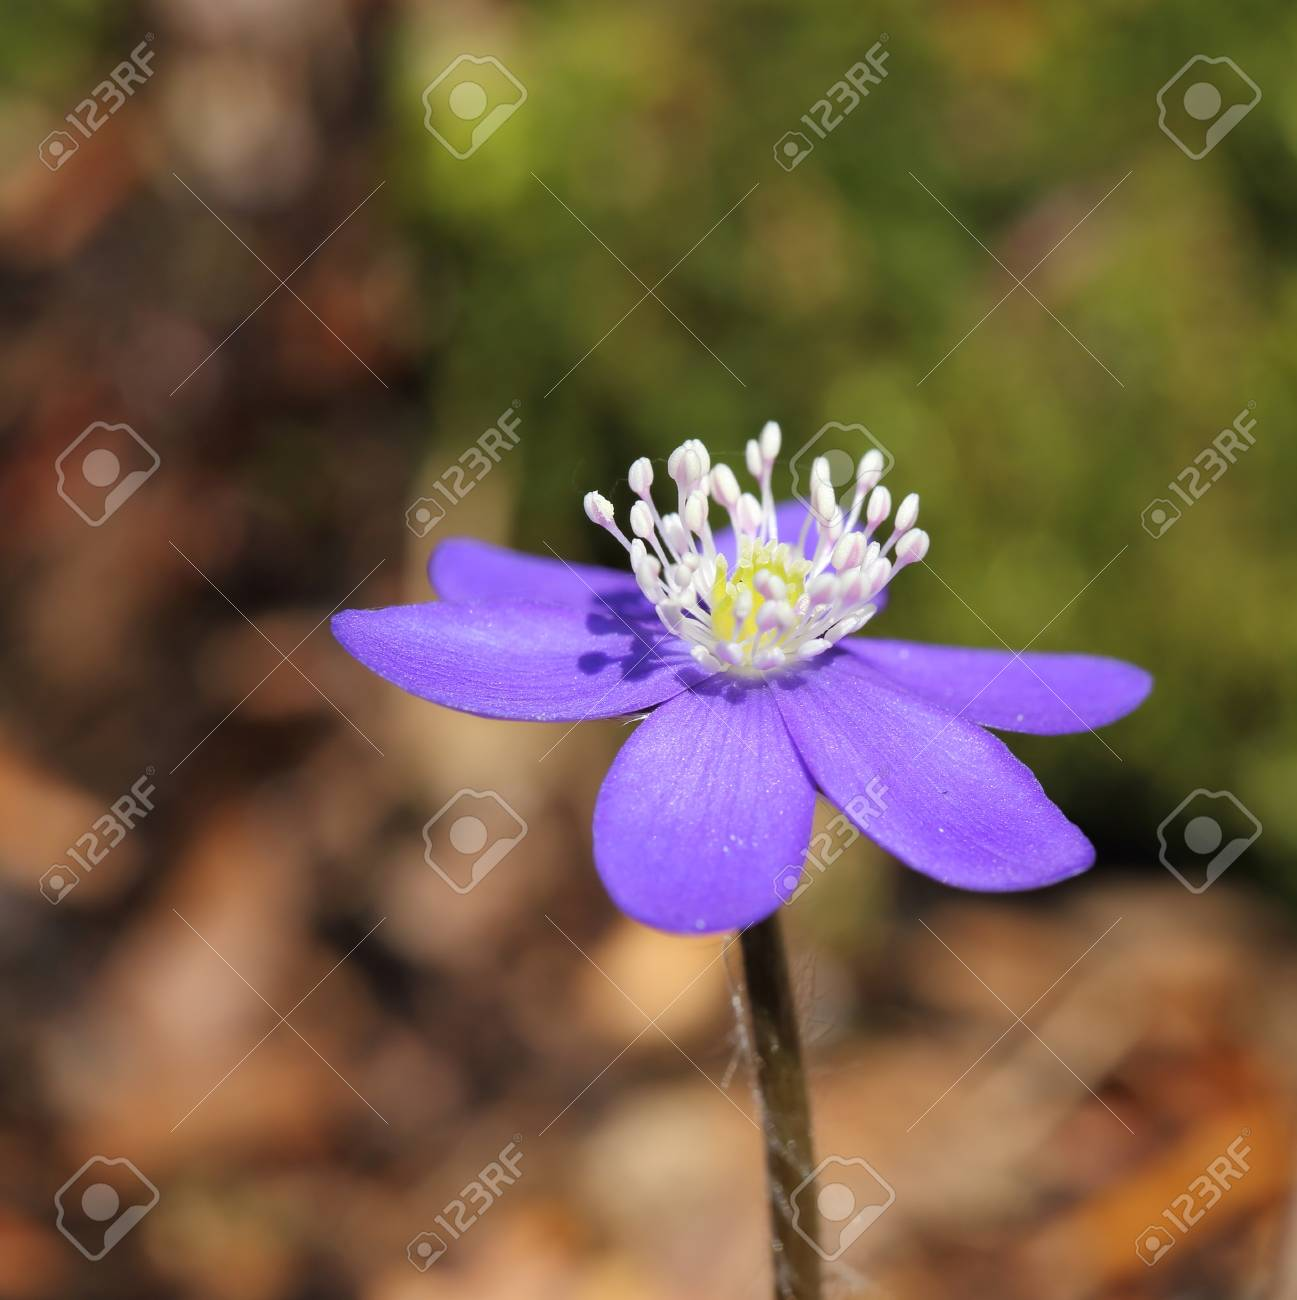 Anemone Hepatica Blooming In The Forest Spring Flowers Stock Photo